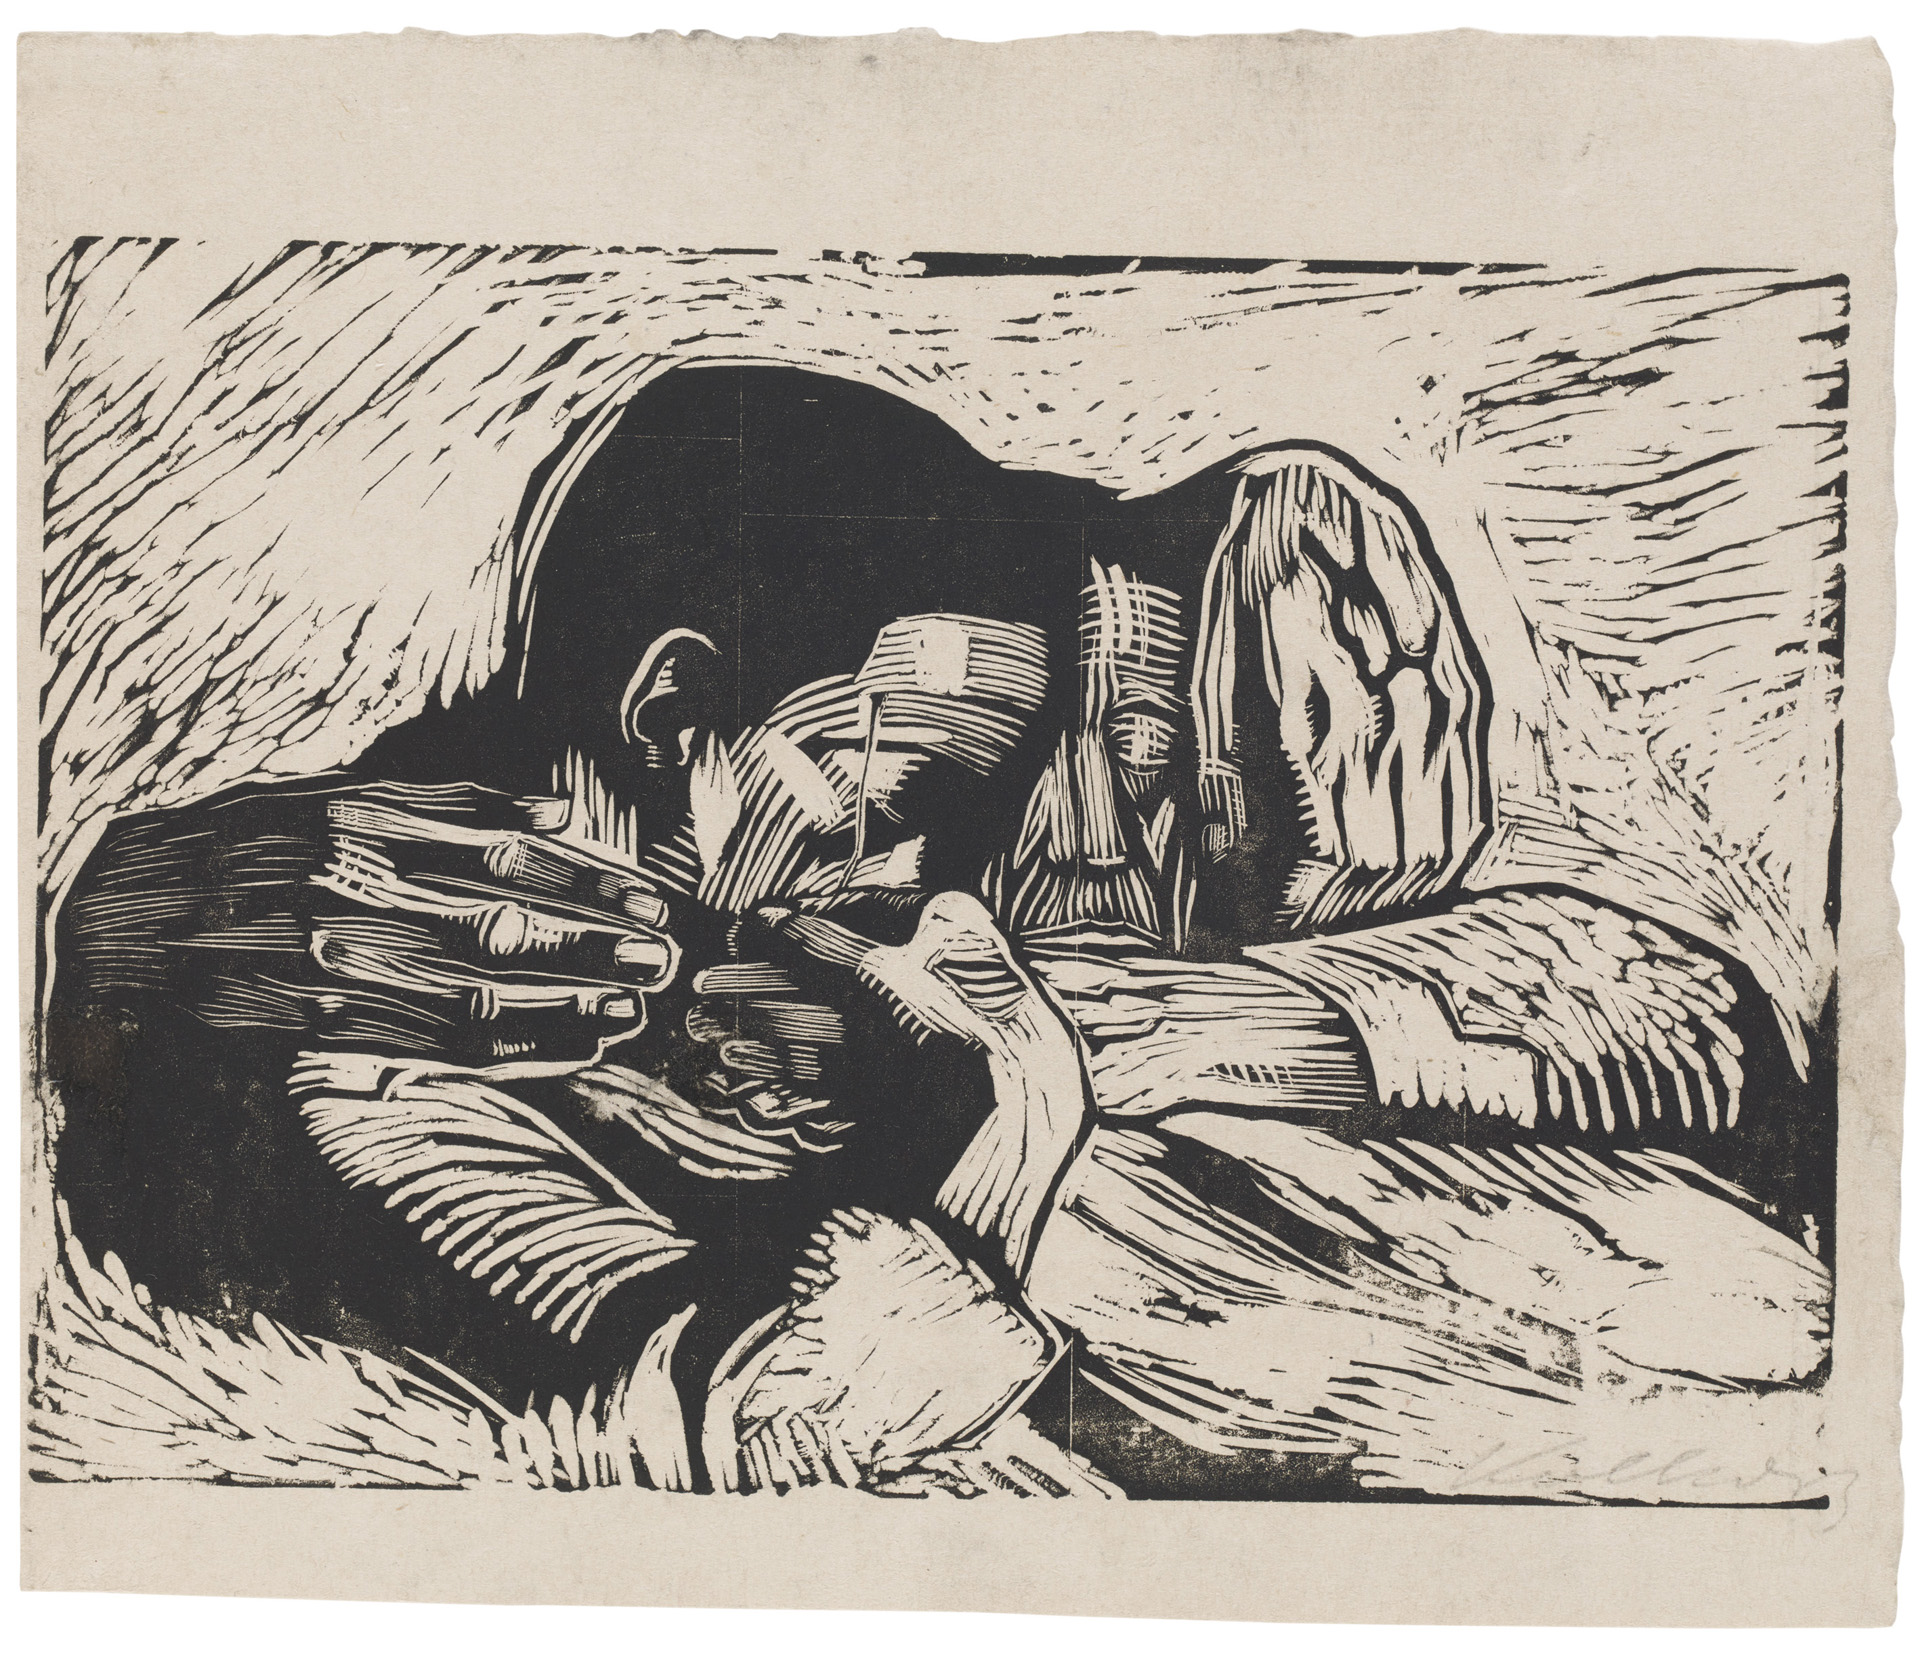 Käthe Kollwitz, Two dead Persons, 1920, woodcut, Kn 158 IV, Cologne Kollwitz Collection © Käthe Kollwitz Museum Köln